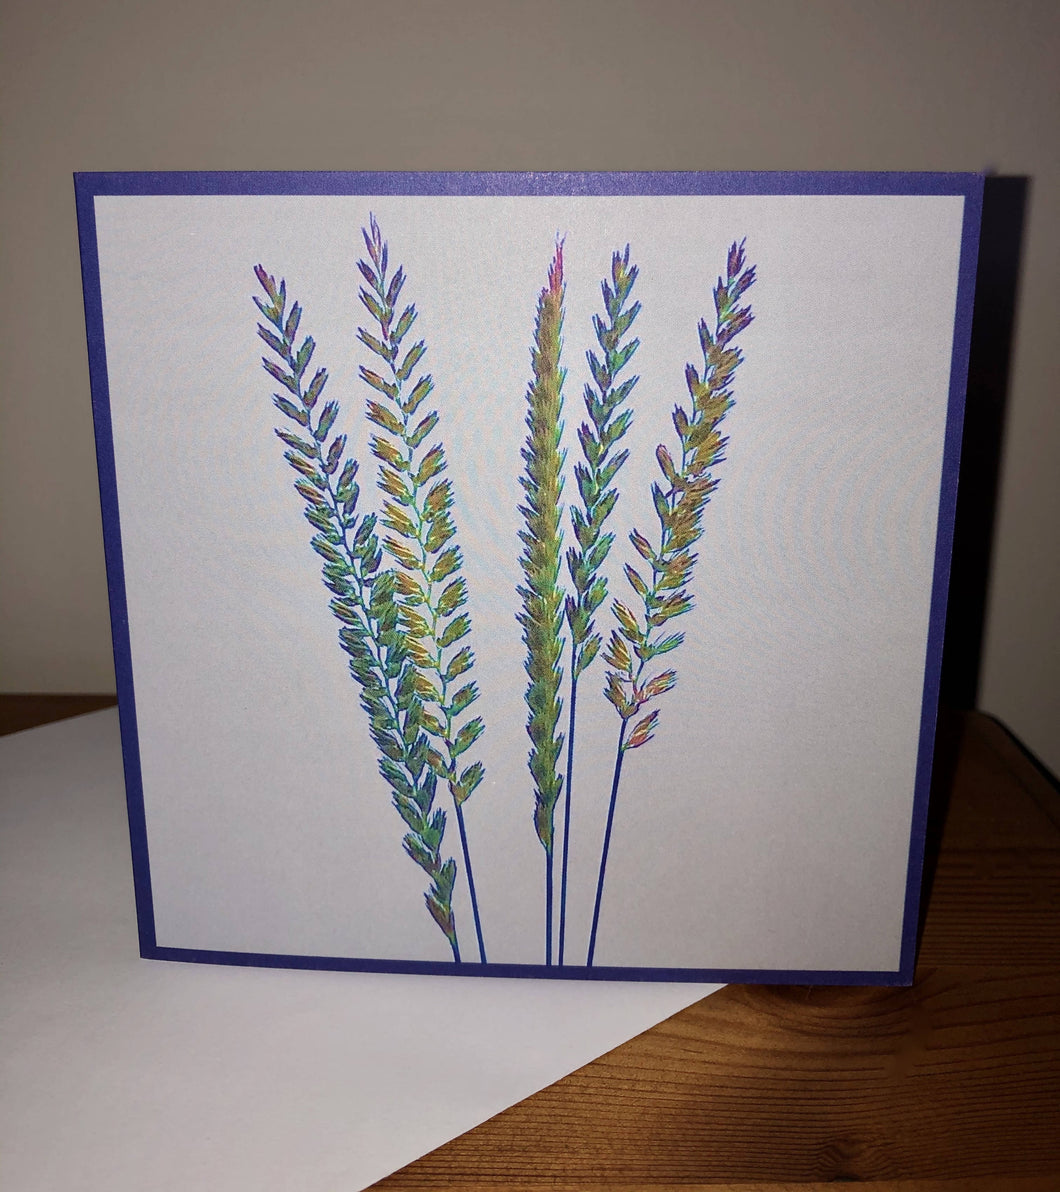 Floral greetings cards - Birthday, Thank you, Get well, Thinking of you